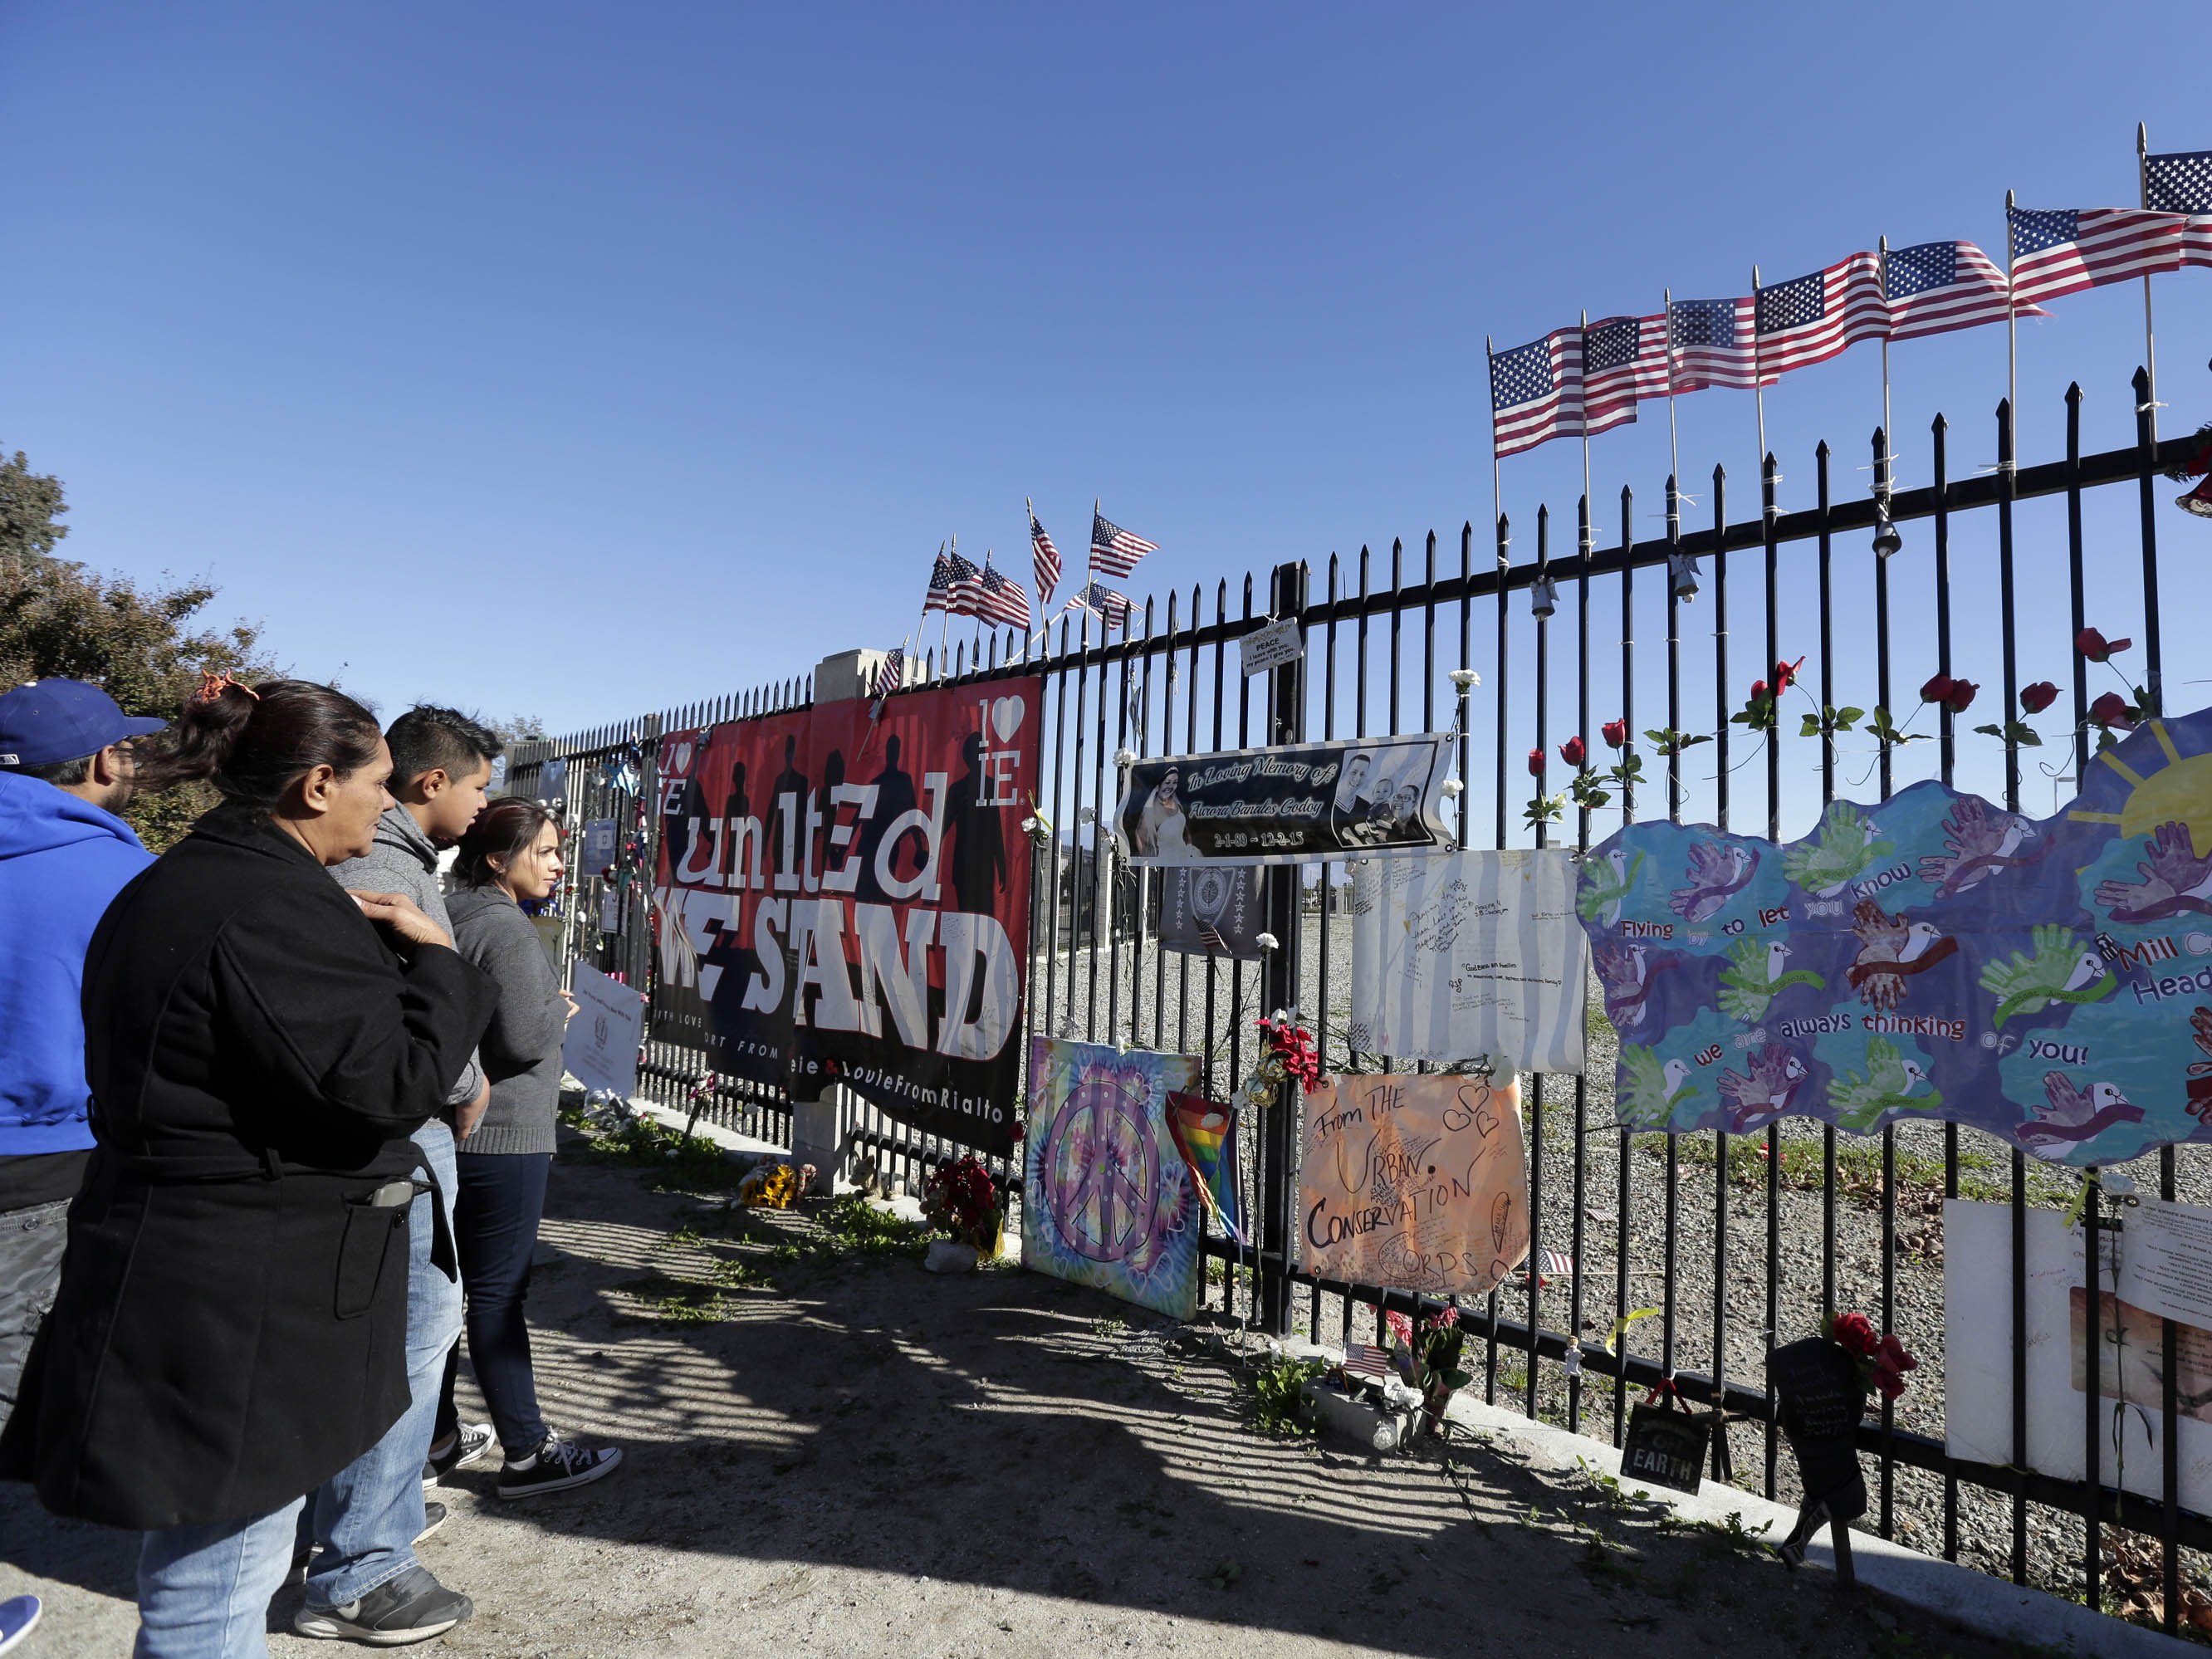 Google, Twitter, Facebook enabled deadly San Bernardino rampage, lawsuit alleges